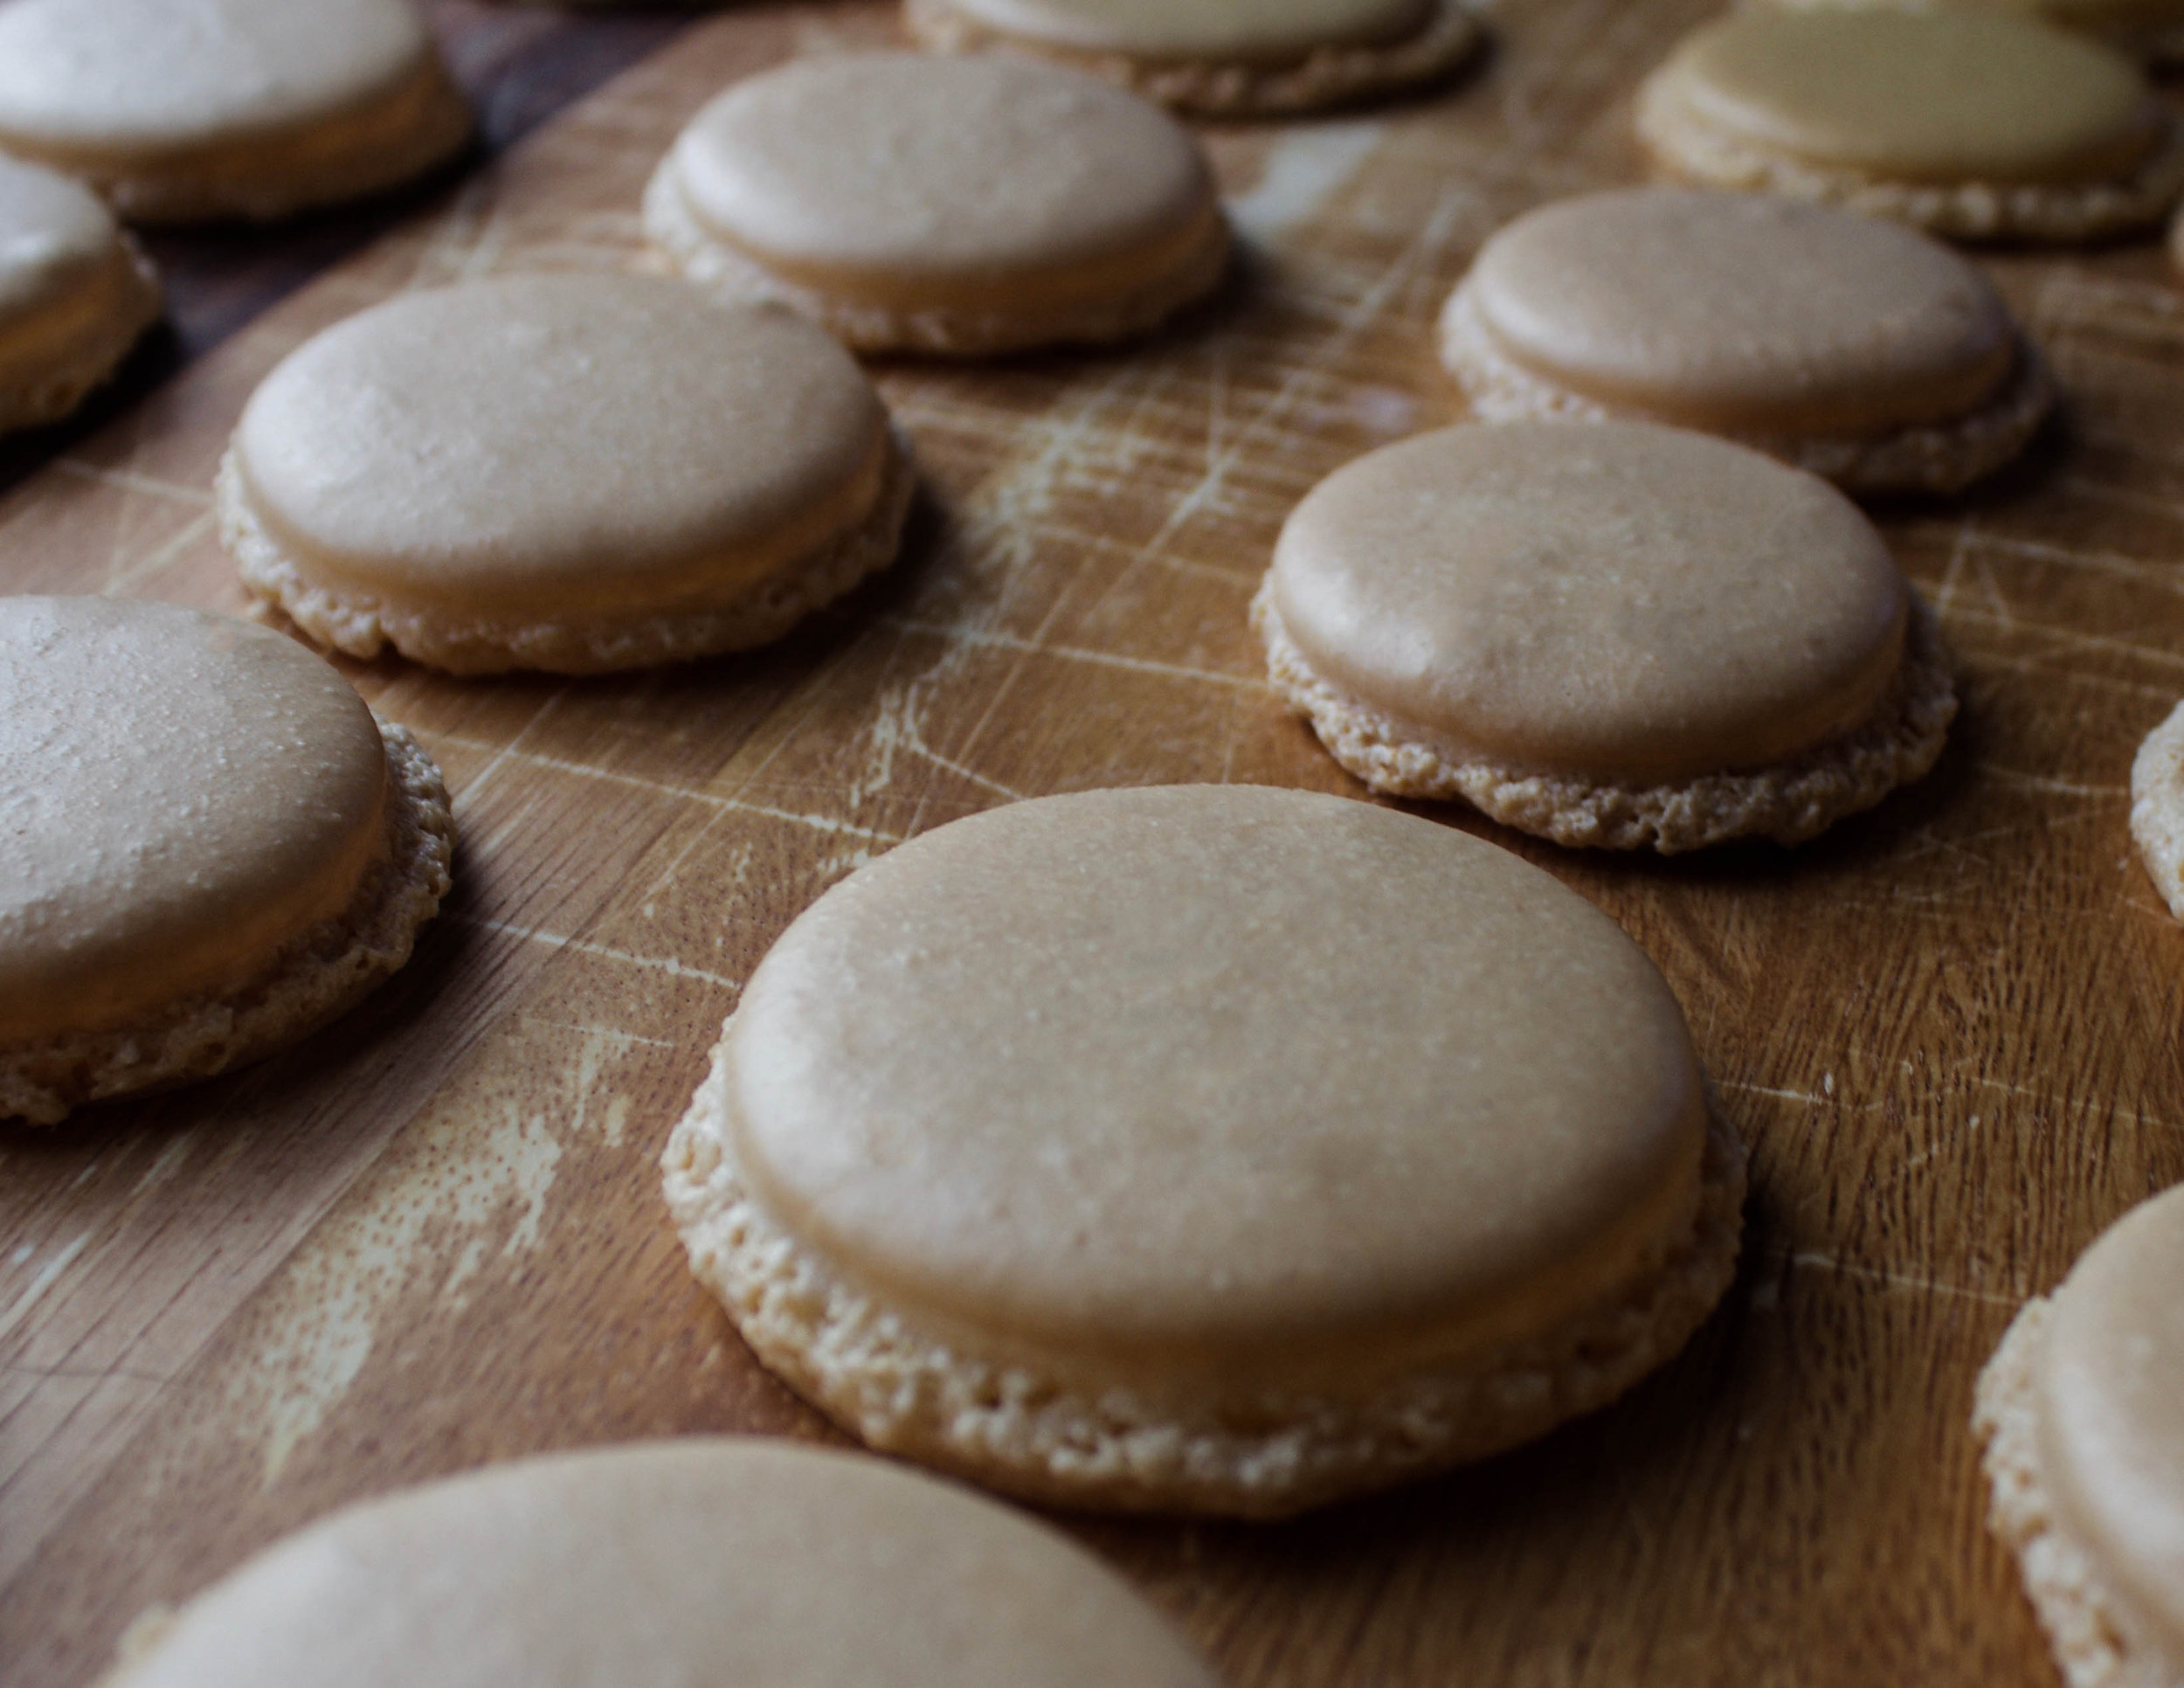 Vanilla and Lemon Macarons with Silpat